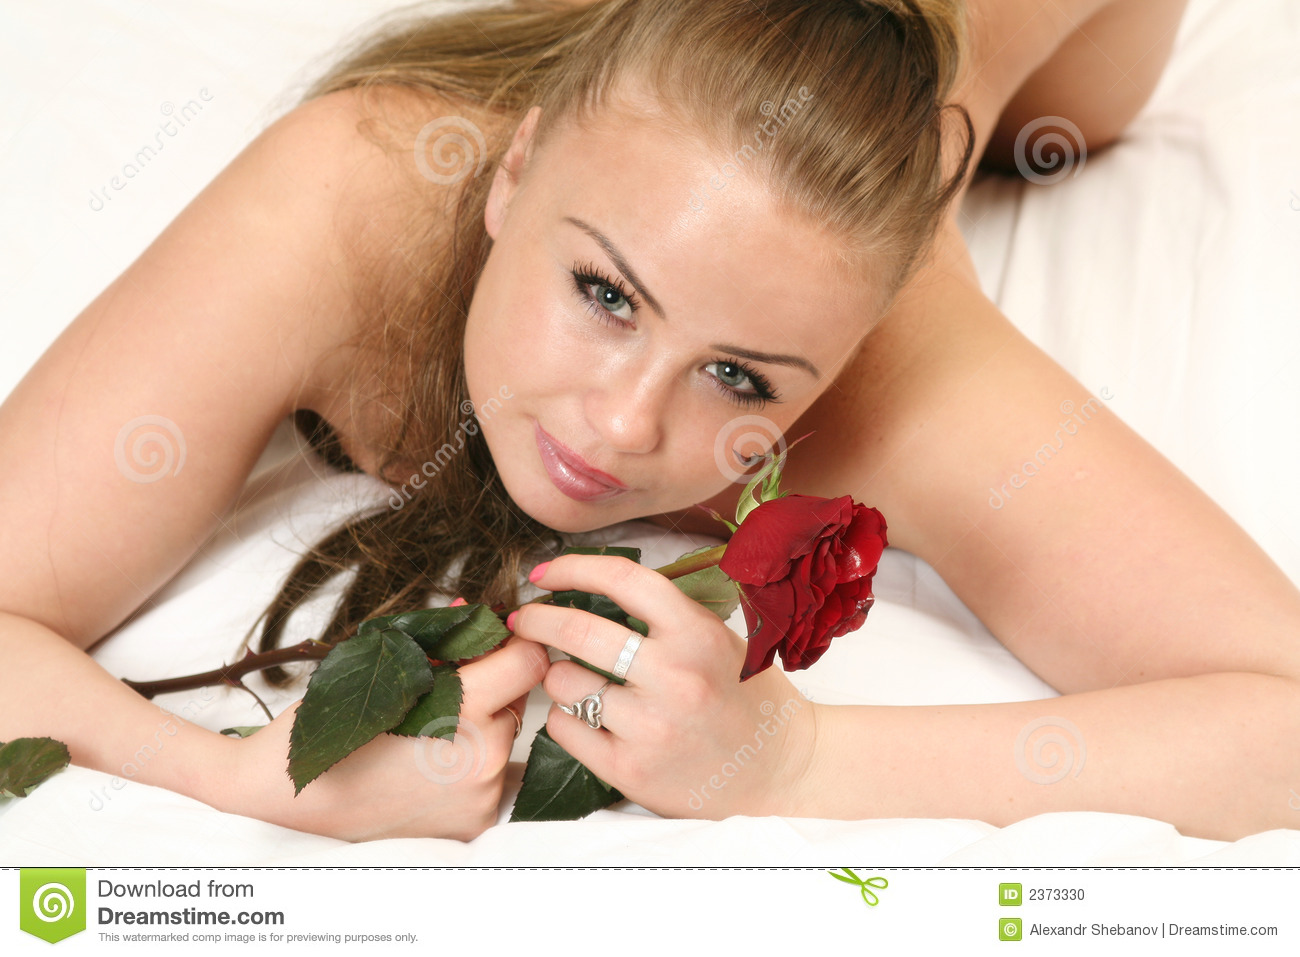 Nude Woman On Bed Of Rose Petals